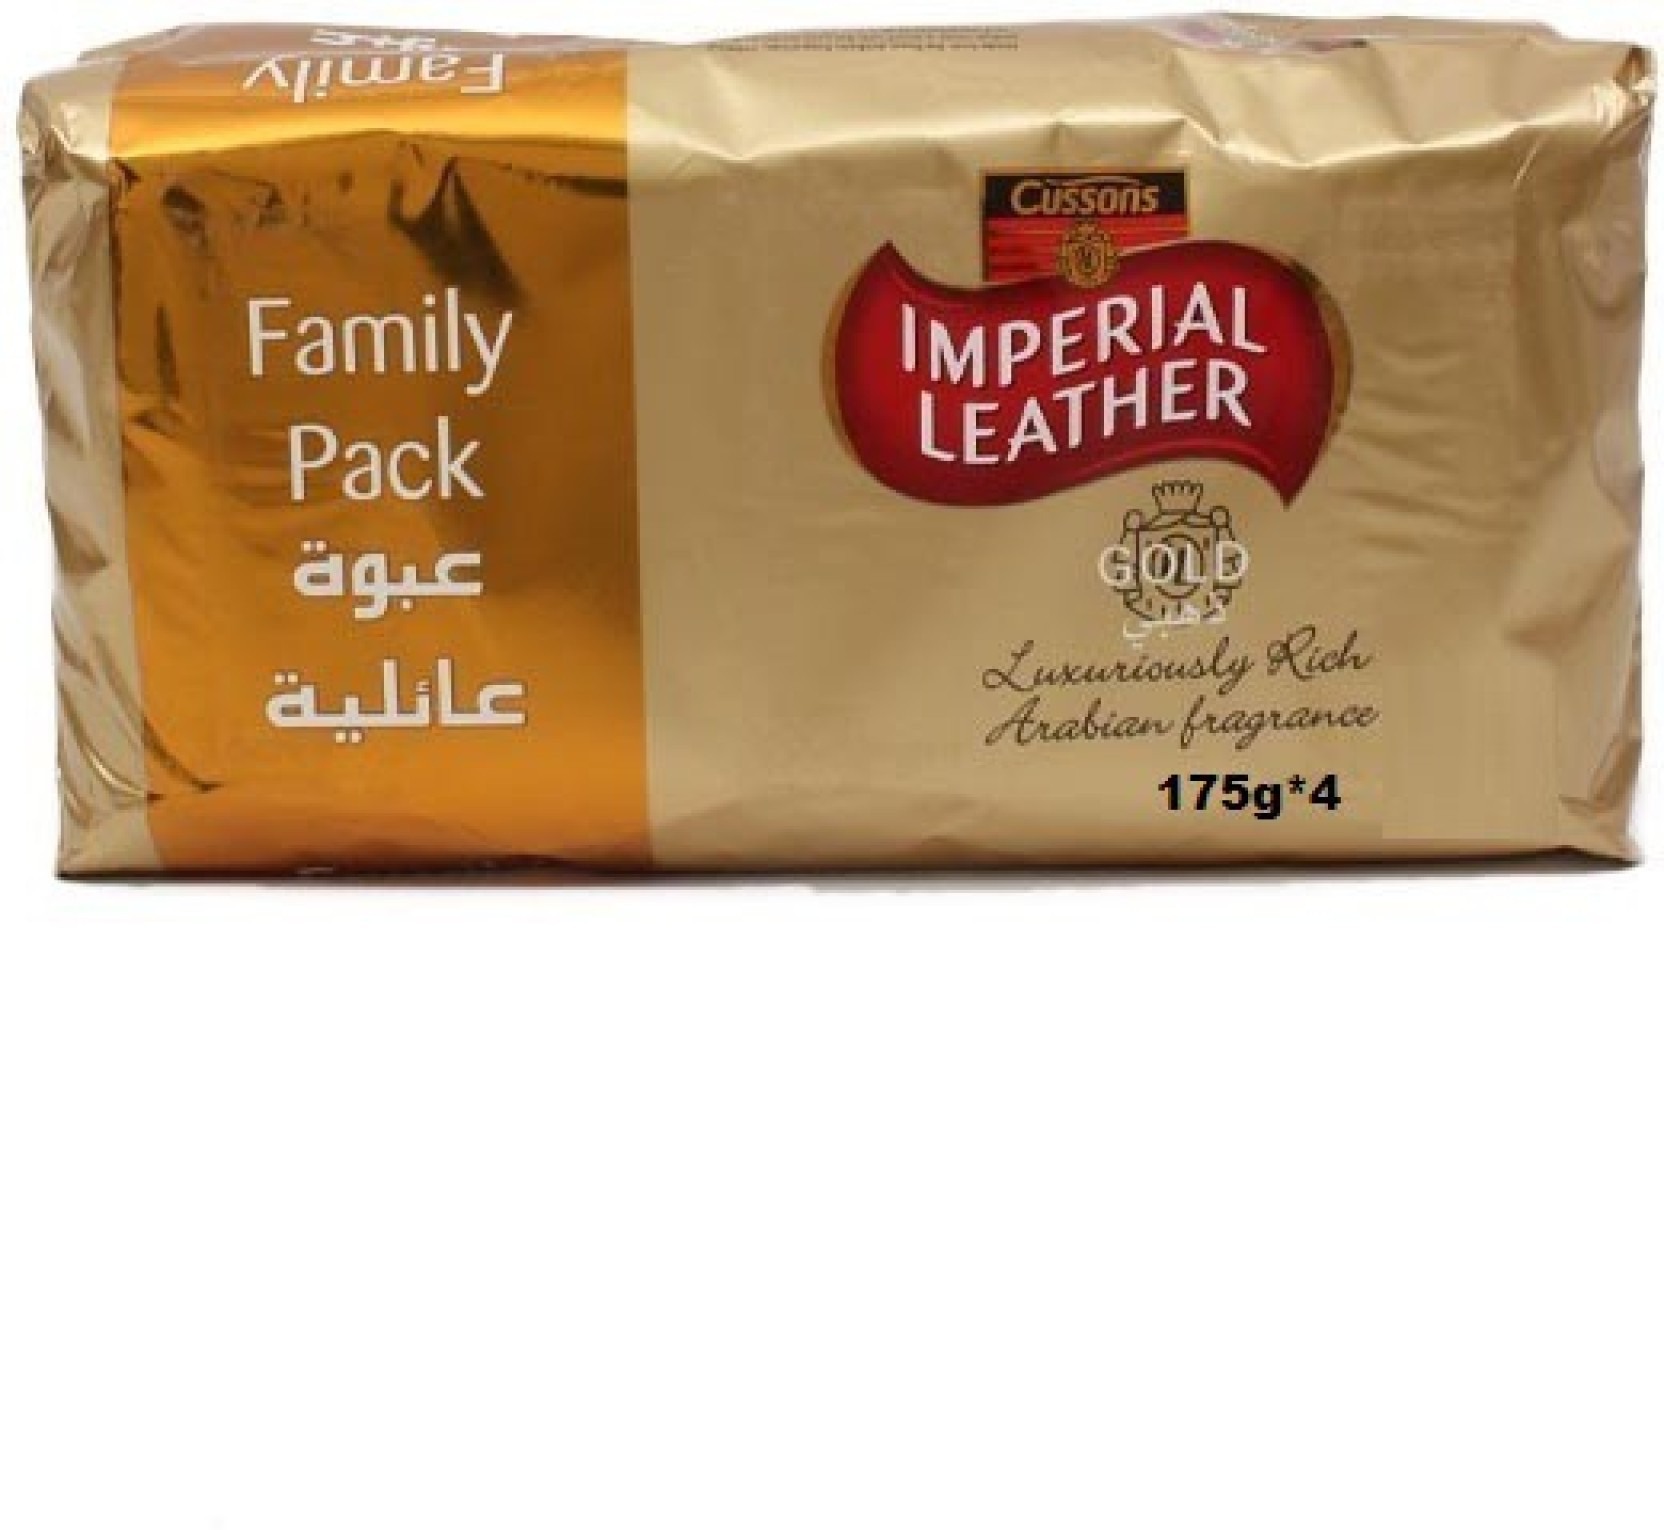 Imperial Leather Cussons Gold Luxuriously Rich With Arabianfragrane Body Soap Home